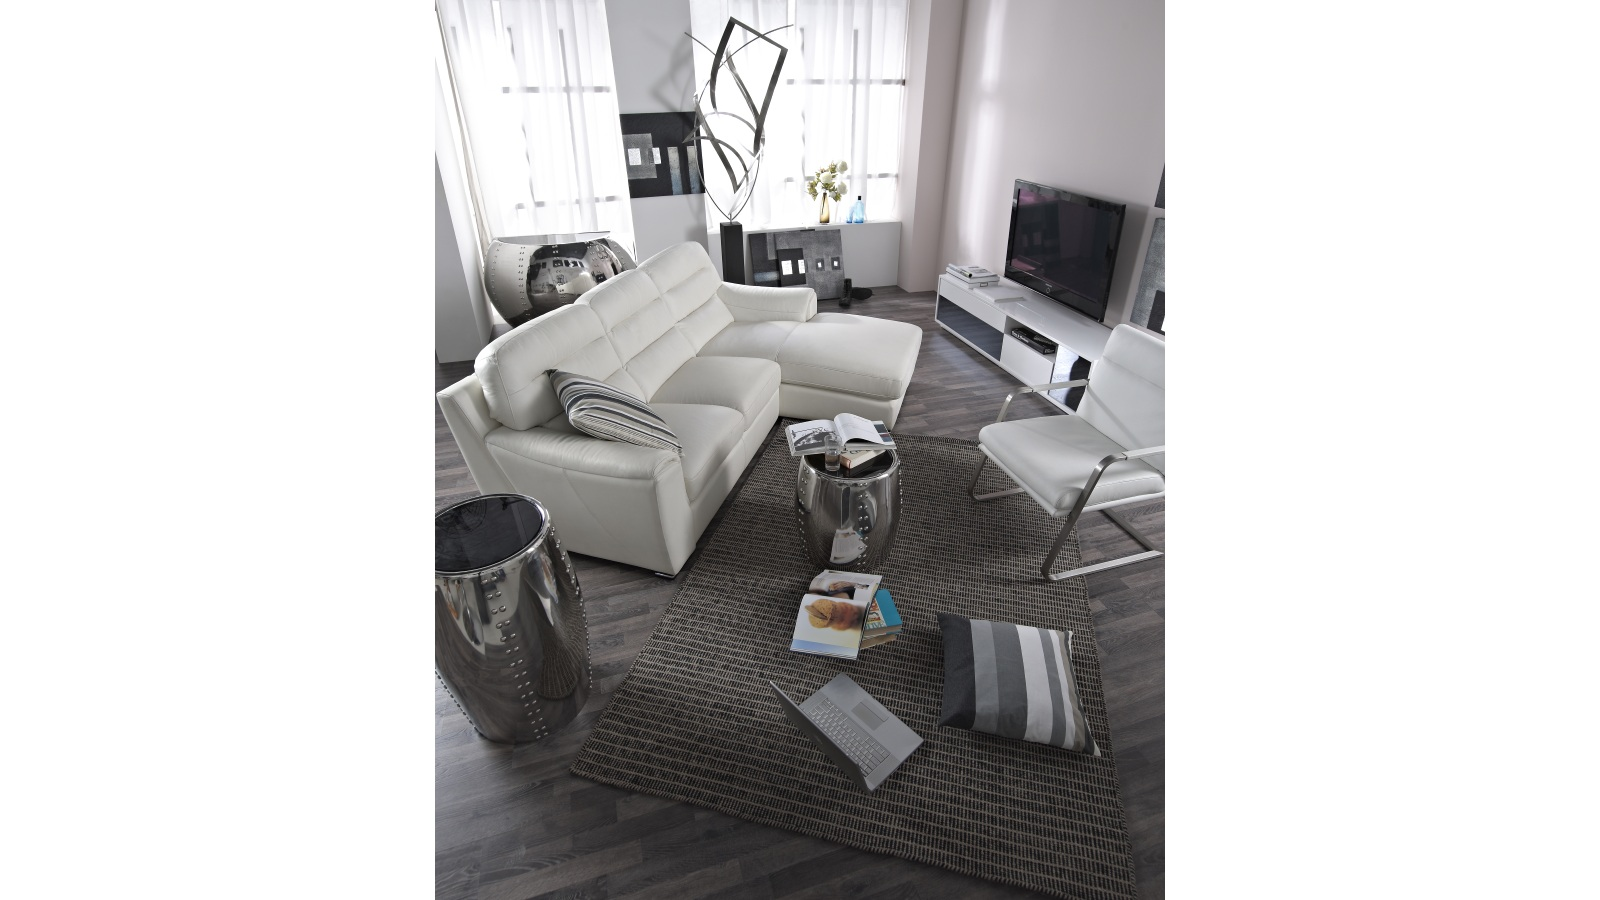 Daniel 2 seater with chaise lounge harvey norman singapore for 2 seater lounge with chaise